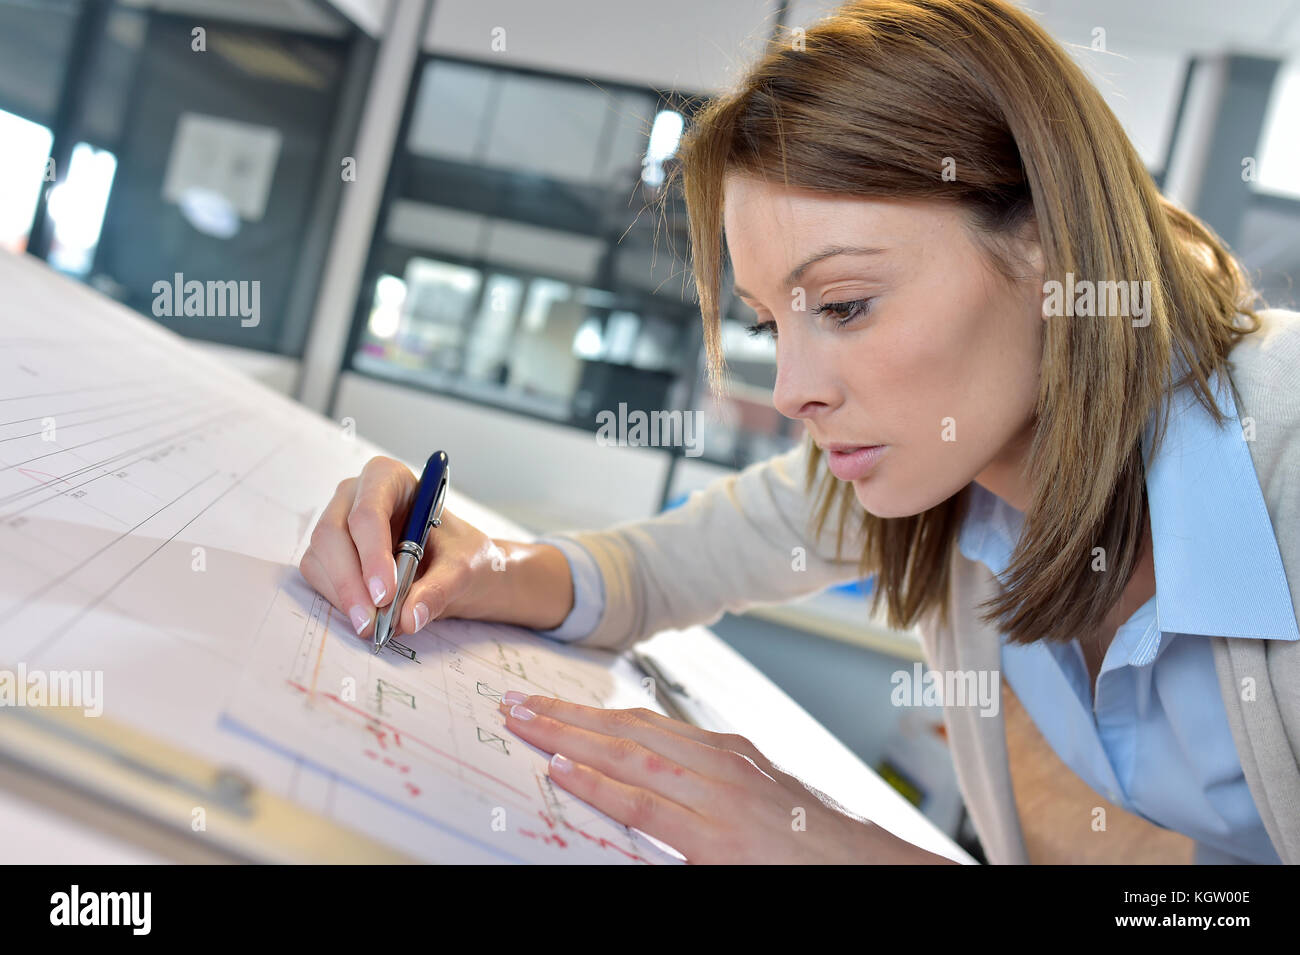 Woman engineer working on blueprint in office - Stock Image